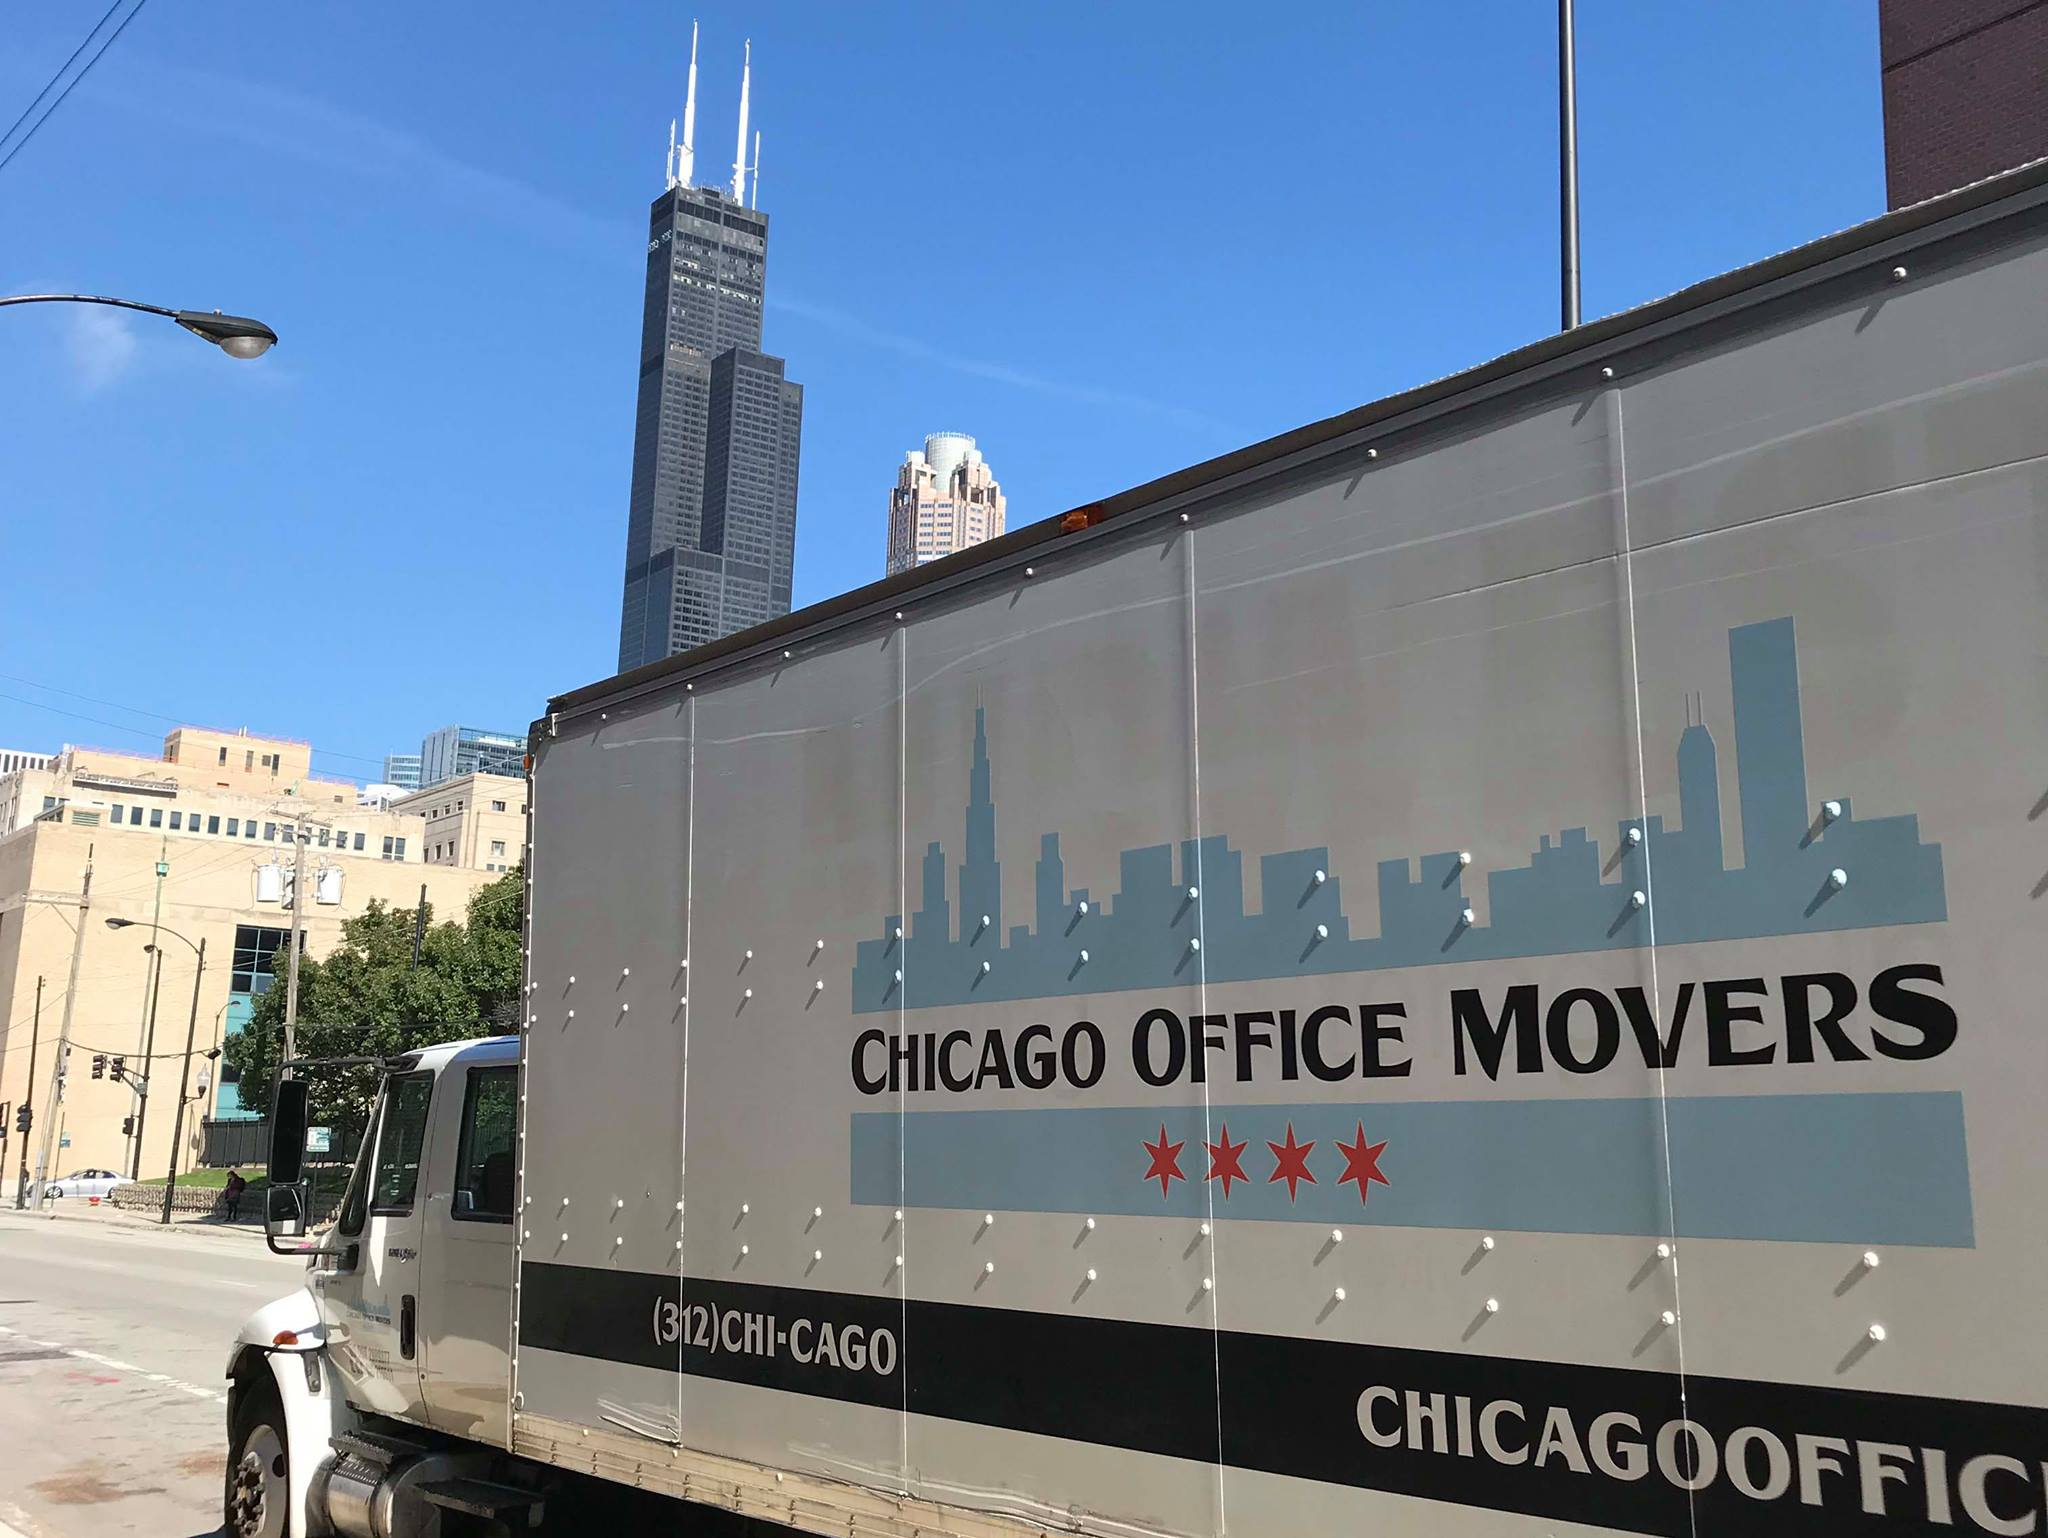 Chicago-Office-Movers-Truck-Building-Chicago-IL